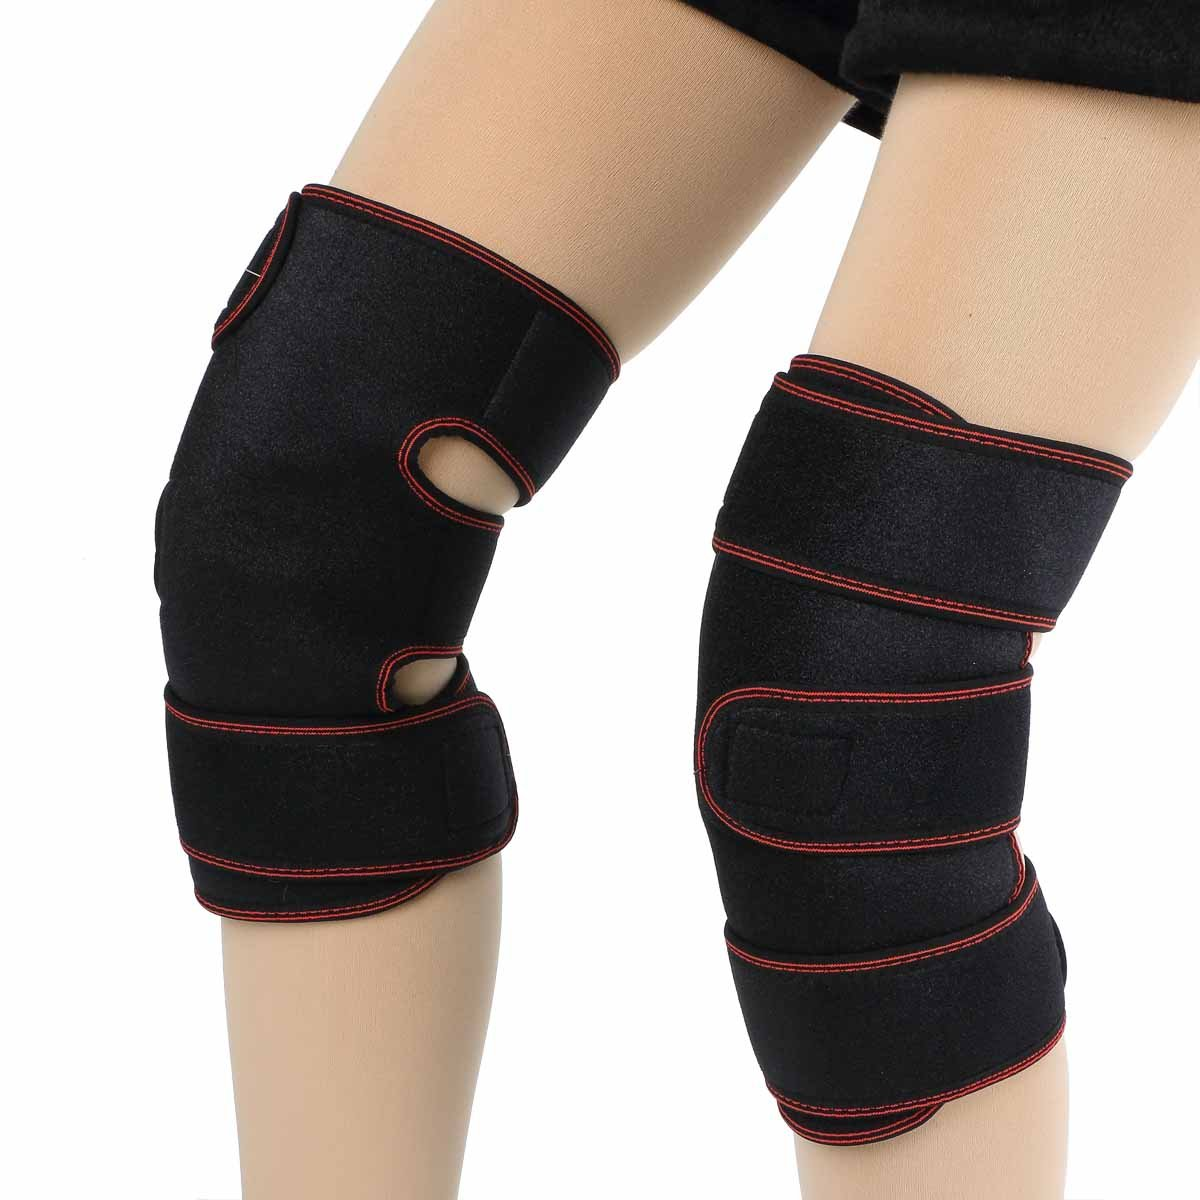 Tcare Health Care Knee Brace Support Therapy Compression Sleeves, with Wool Pads and Tourmaline Magnetic Therapy Pads for Arthritis, Meniscus Tear,ACL,Pain Relief, Injury Recovery (Red)